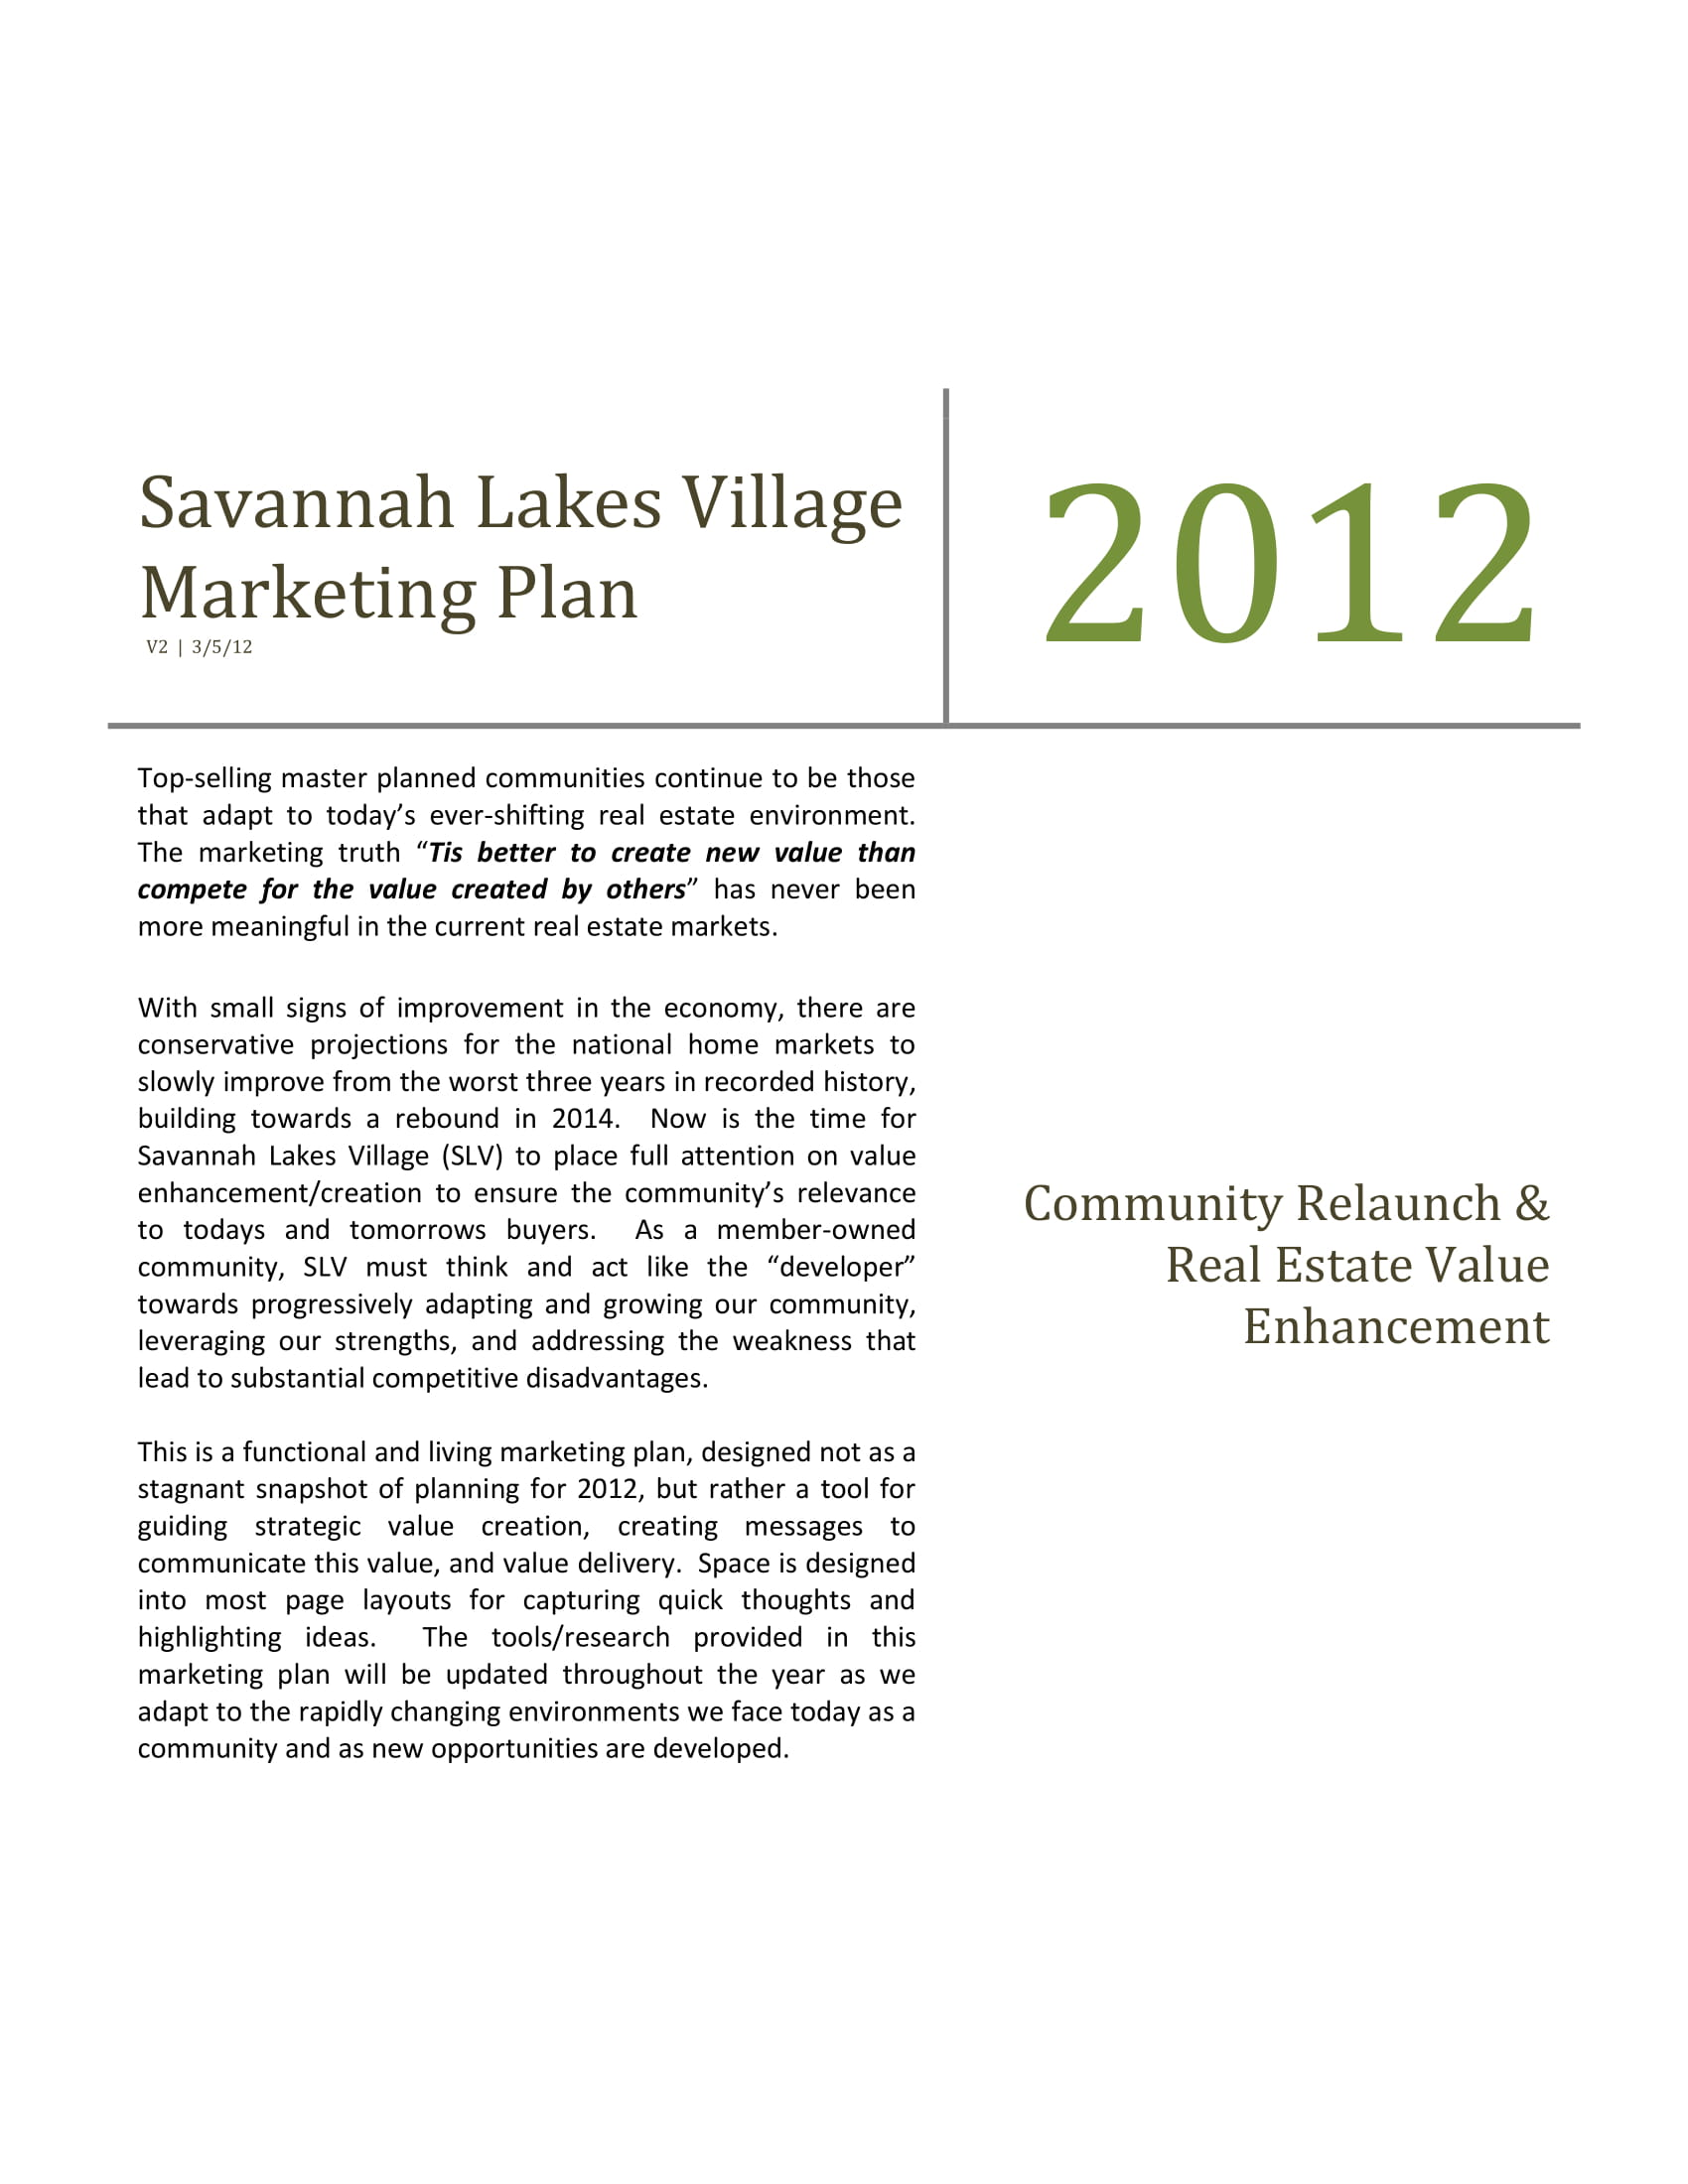 marketing plan for a village example 01